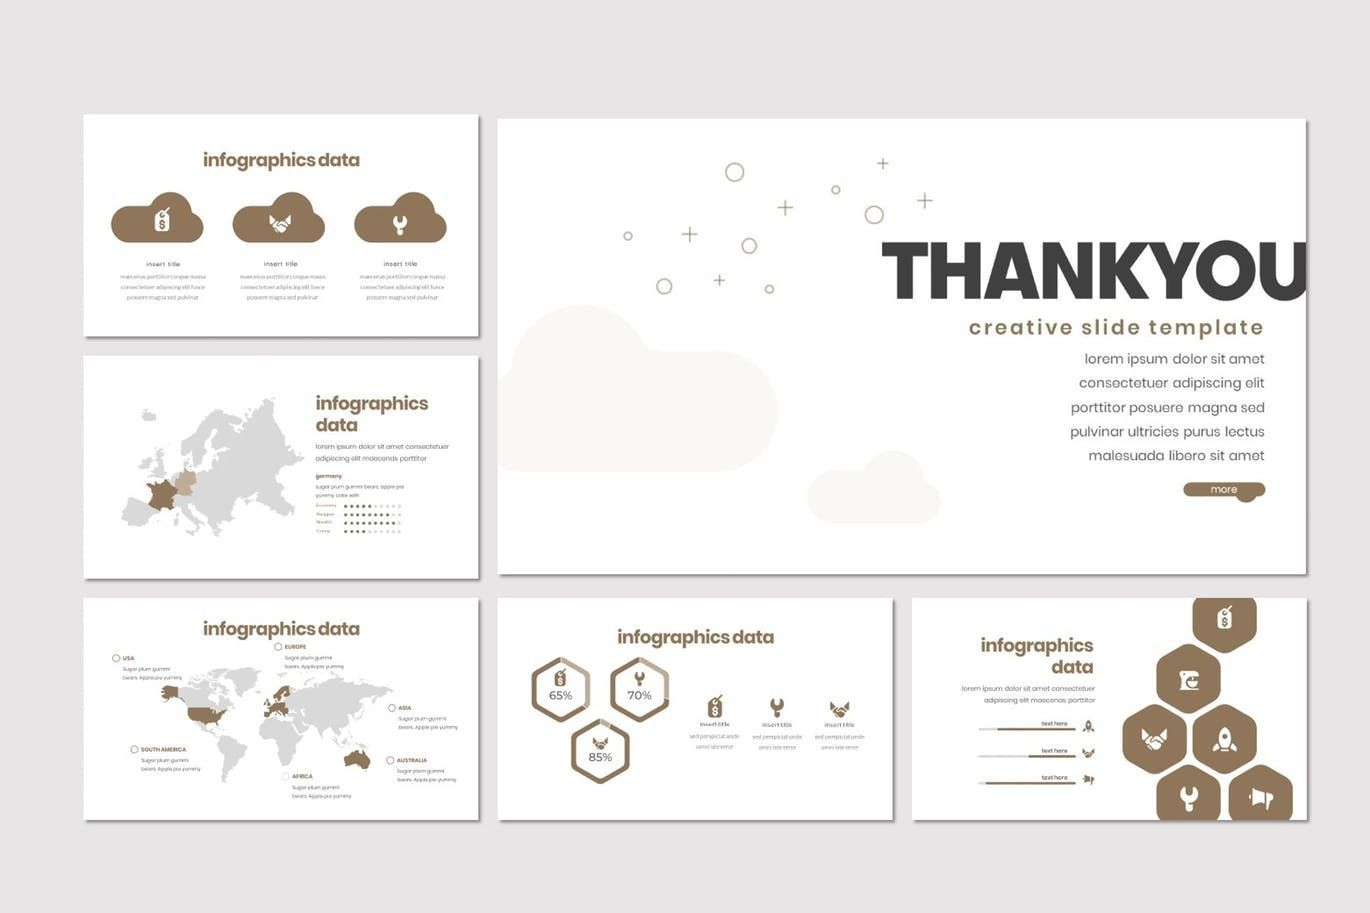 Cloudstrot - PowerPoint Template, Slide 5, 07898, Presentation Templates — PoweredTemplate.com